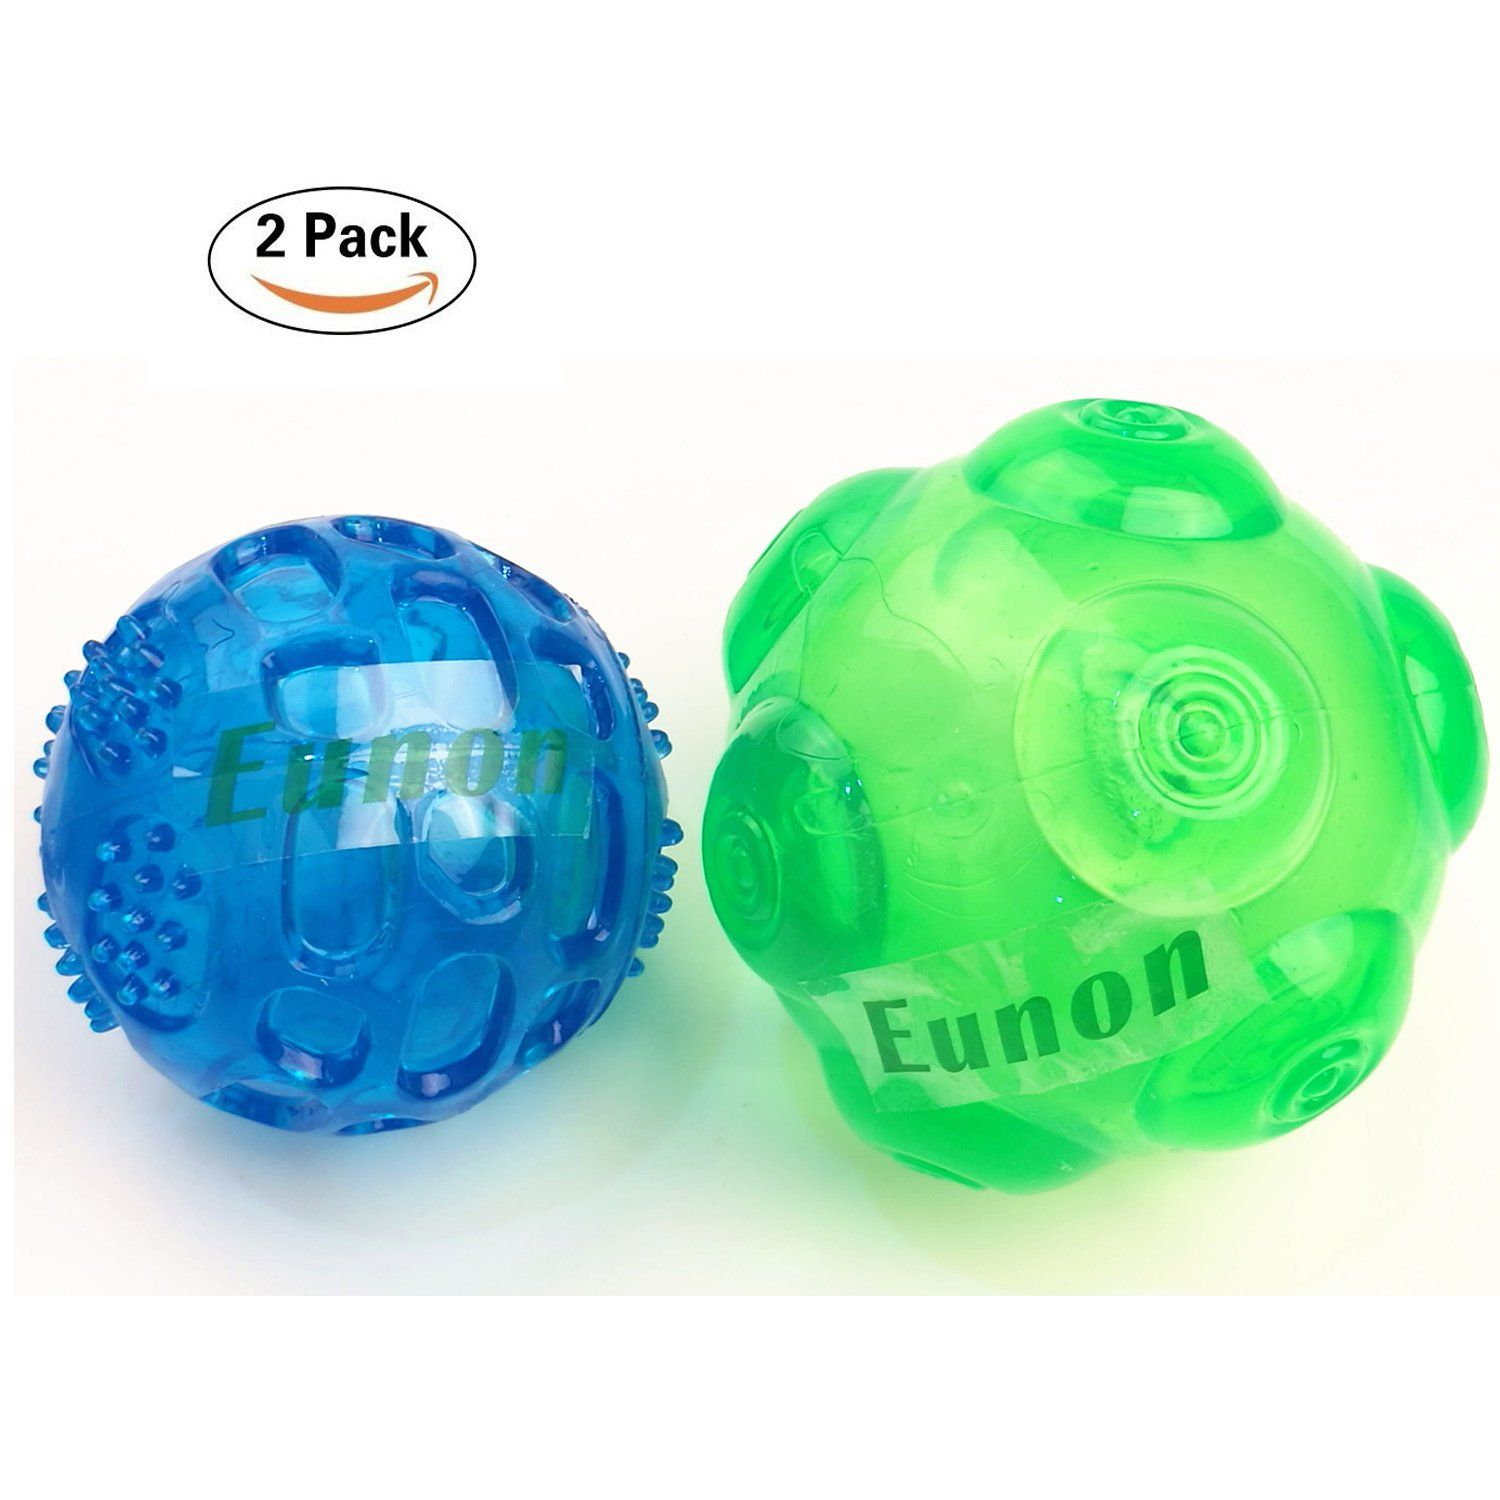 Eunon Dog Ball 3 5 Inch Durable Rubber Dog Toy Indestructible